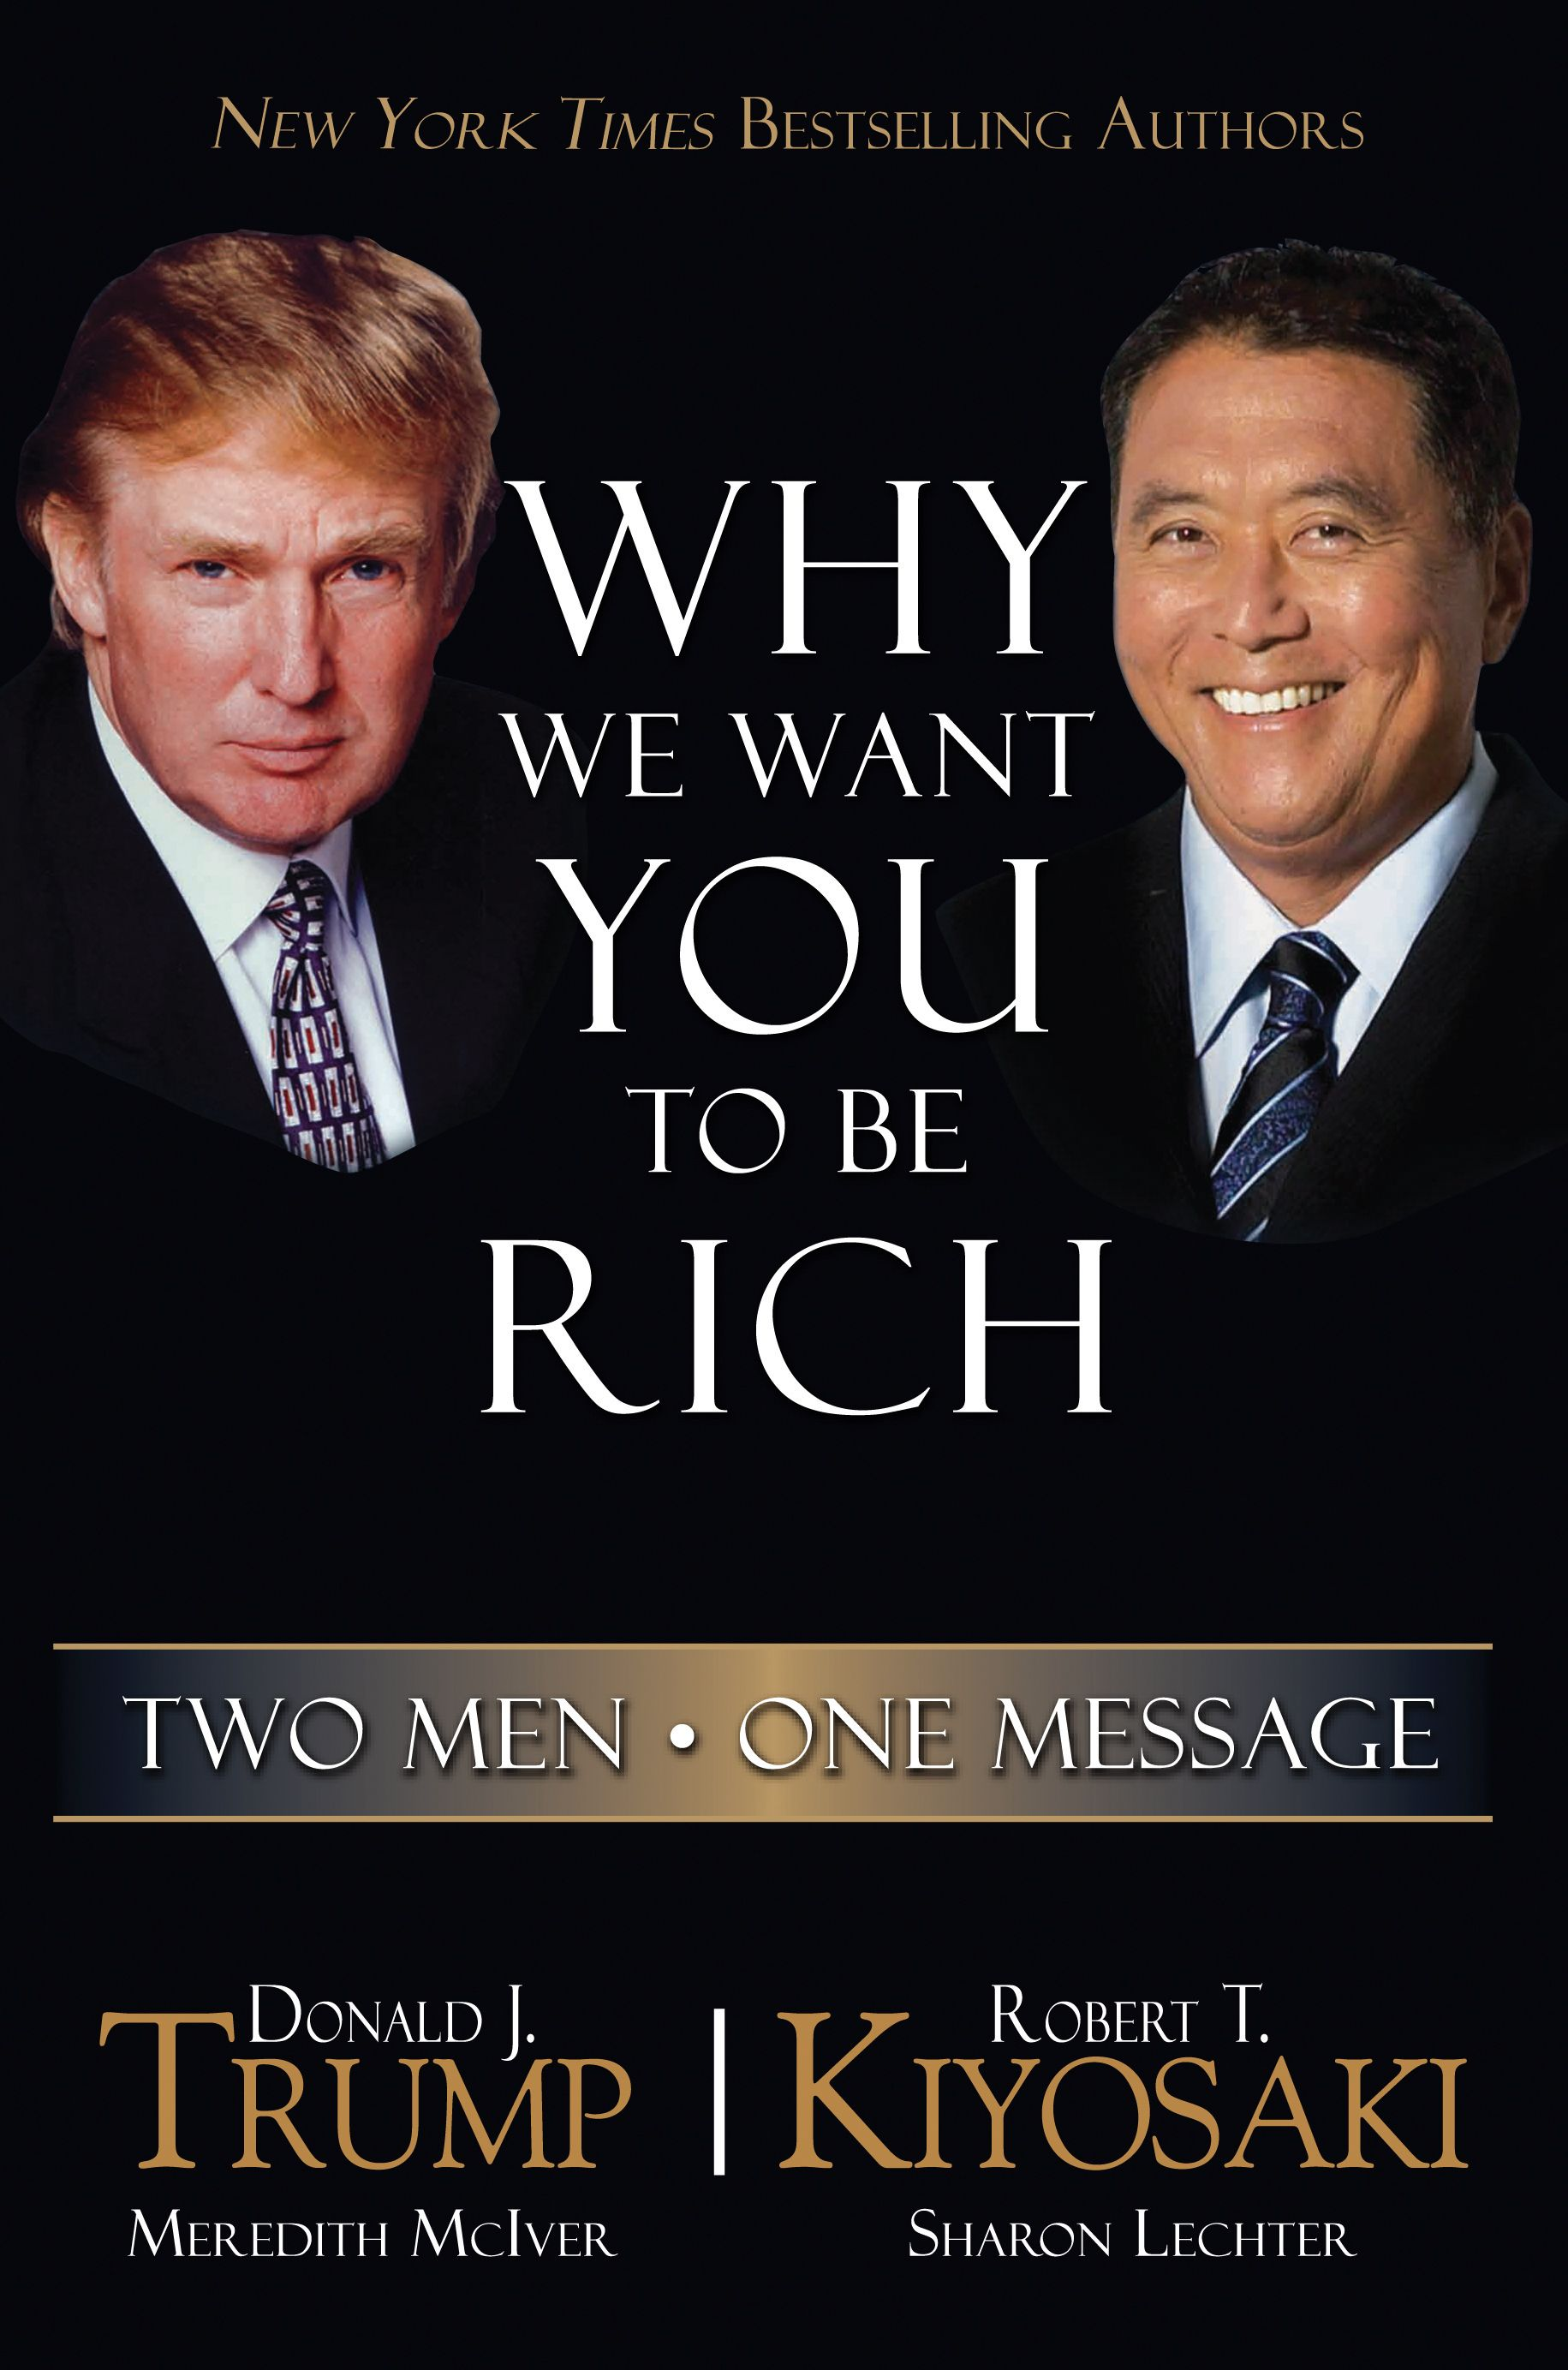 Miss You Libro Donald Trump And Robert Kiyosaki Why We Want You To Be